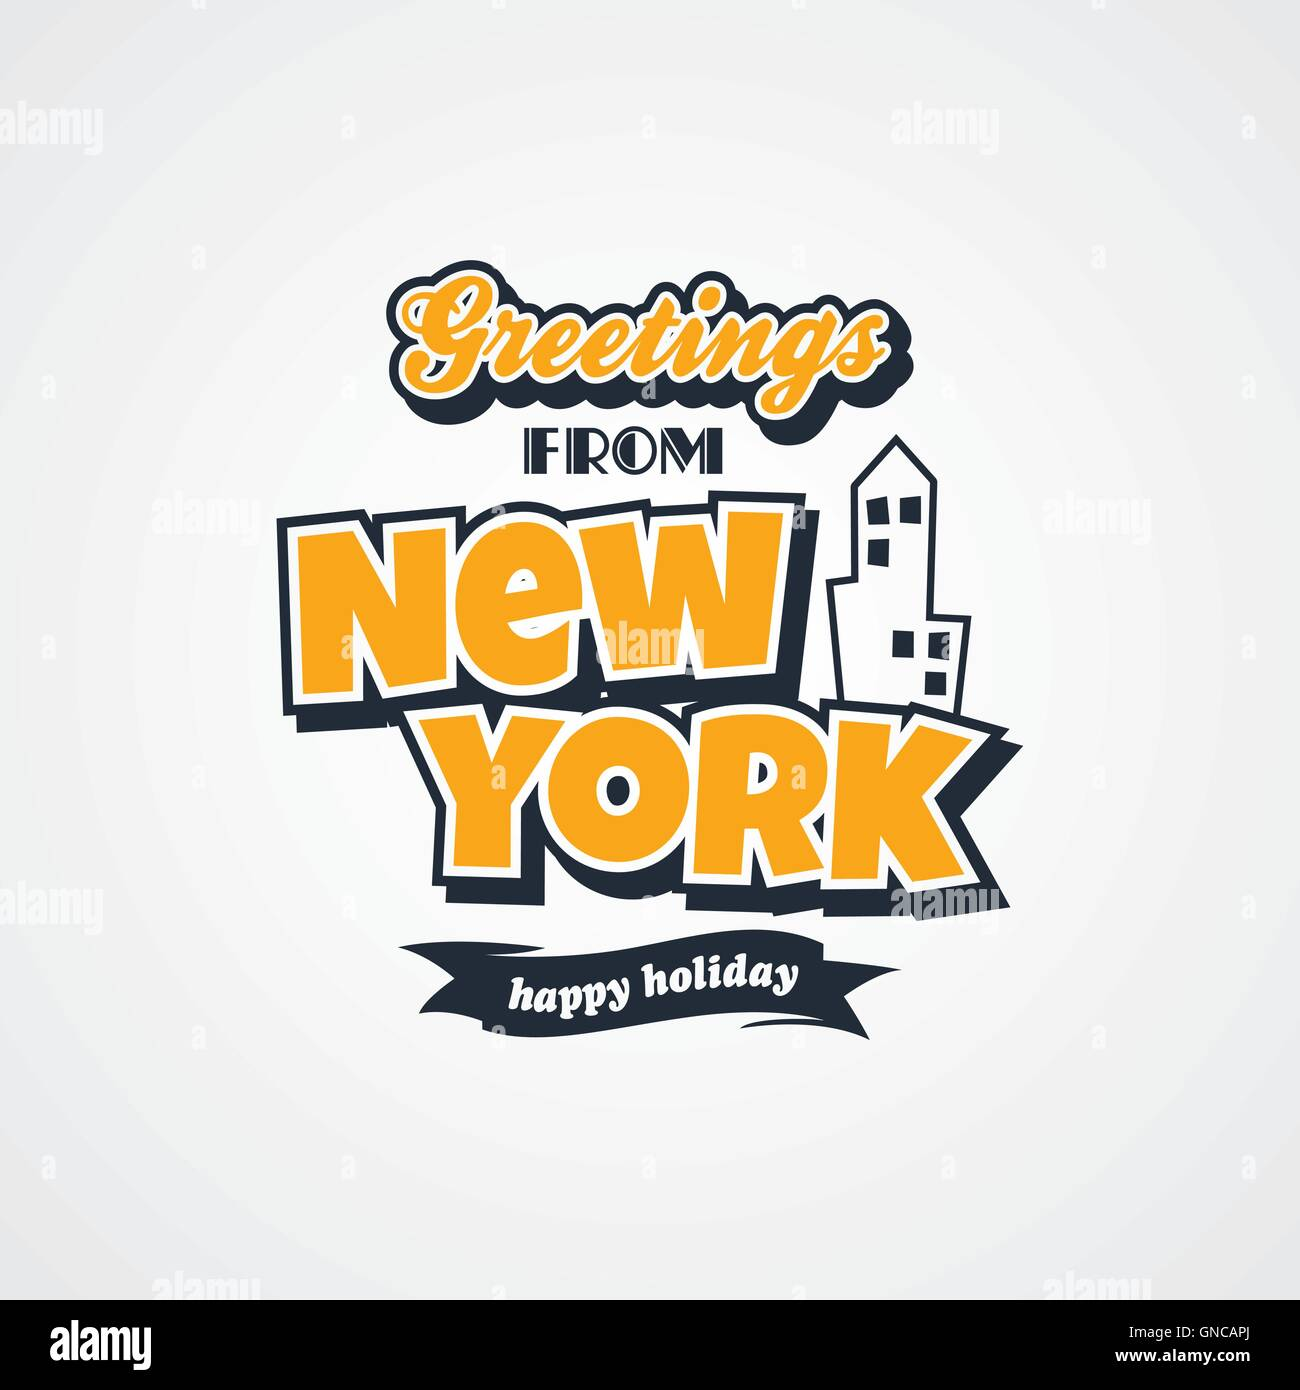 New york vacation greetings theme stock vector art illustration new york vacation greetings theme m4hsunfo